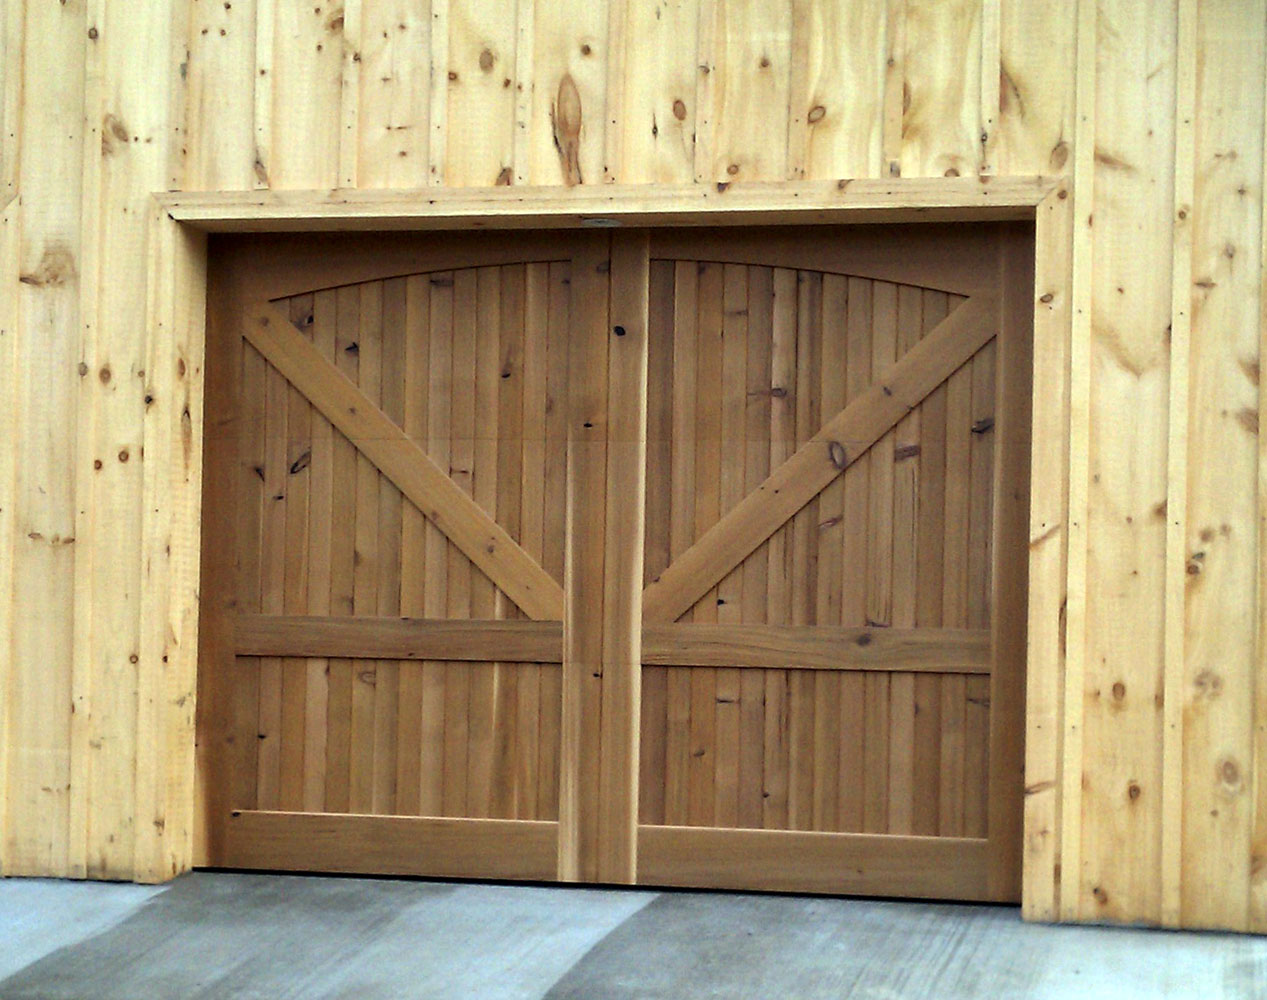 Doors To Garage: Wooden Overhead Door